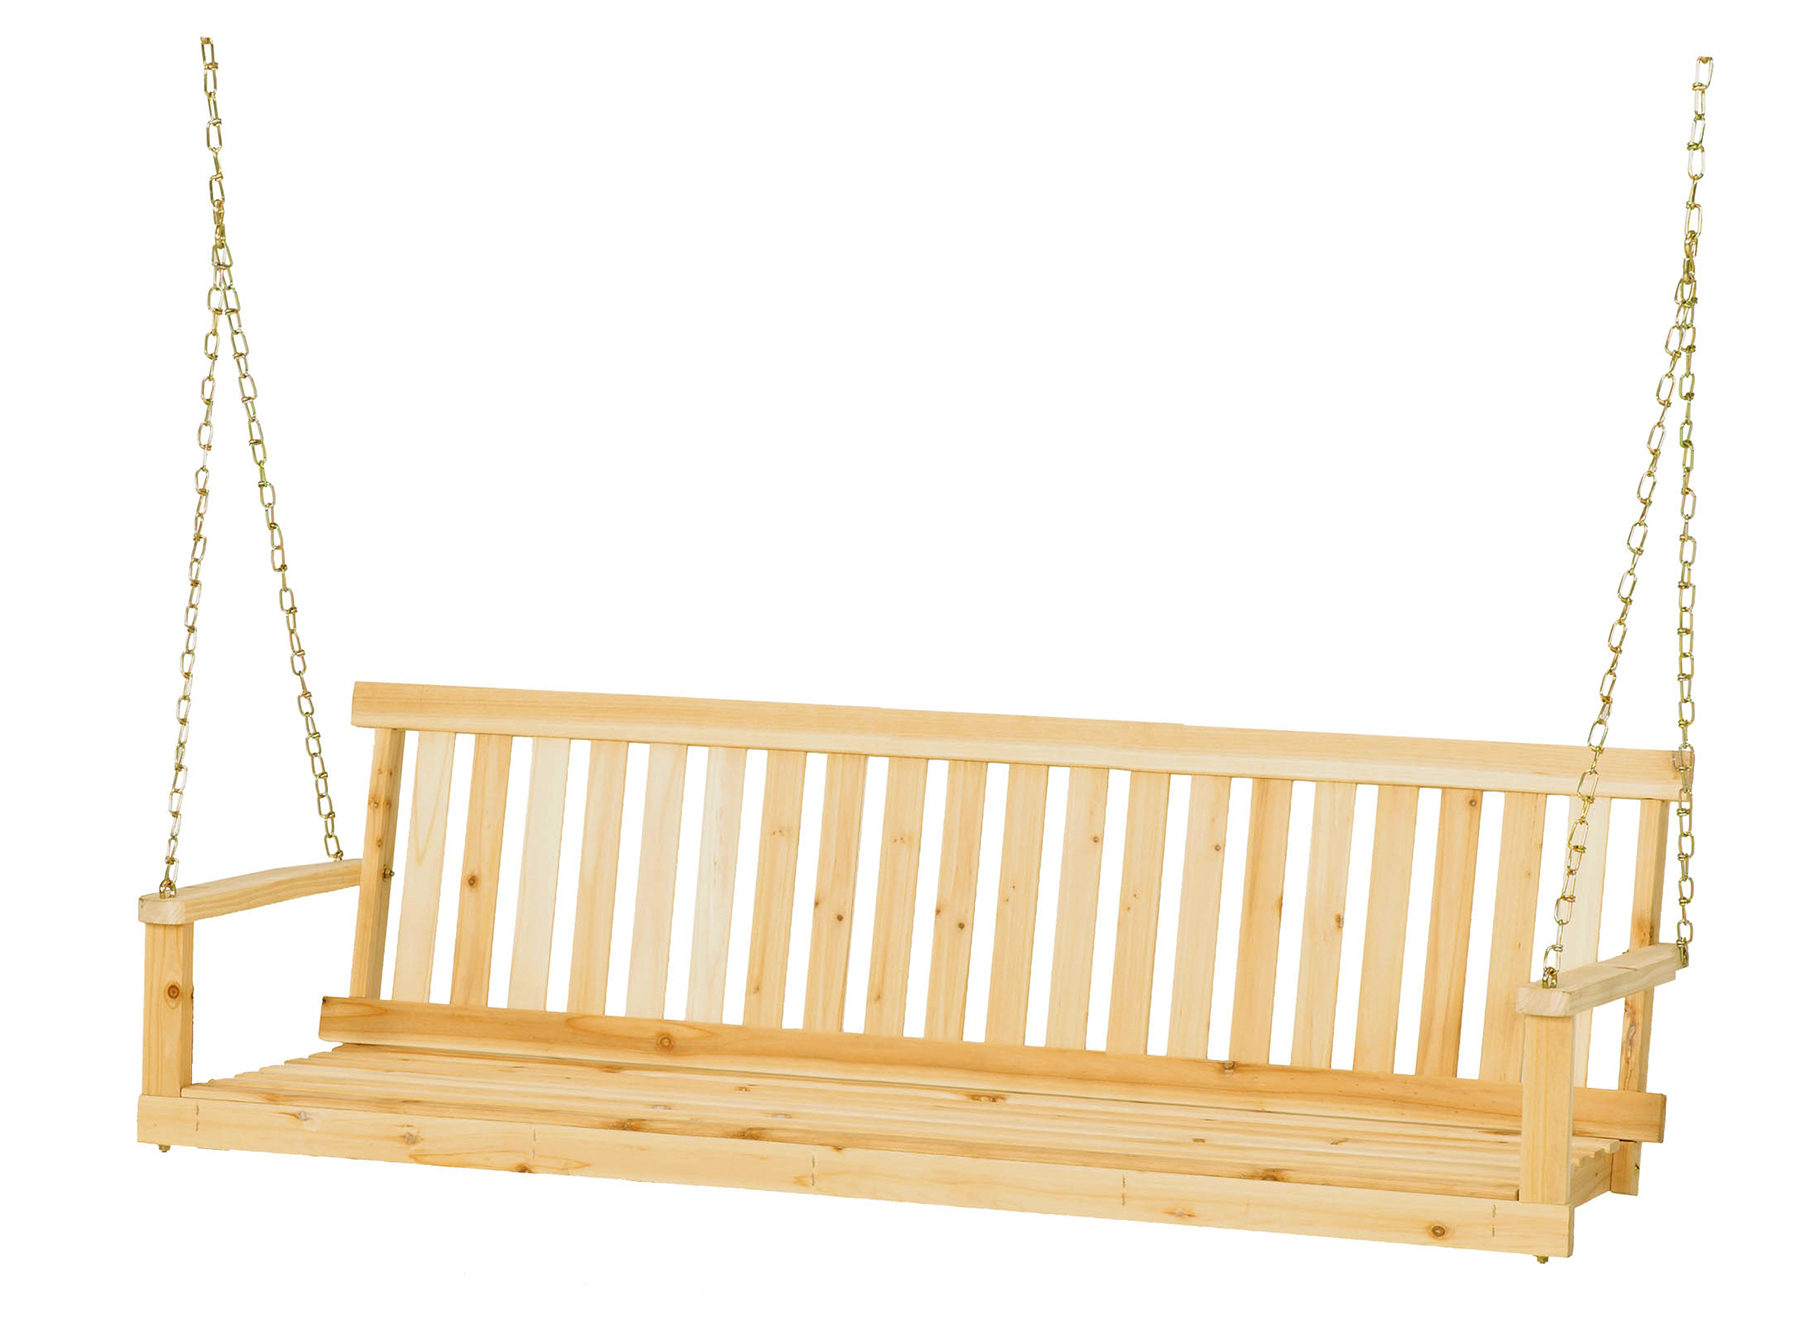 Jack Post Jennings 5' Swing With Chains – Walmart Throughout Well Liked Porch Swings With Chain (View 15 of 26)